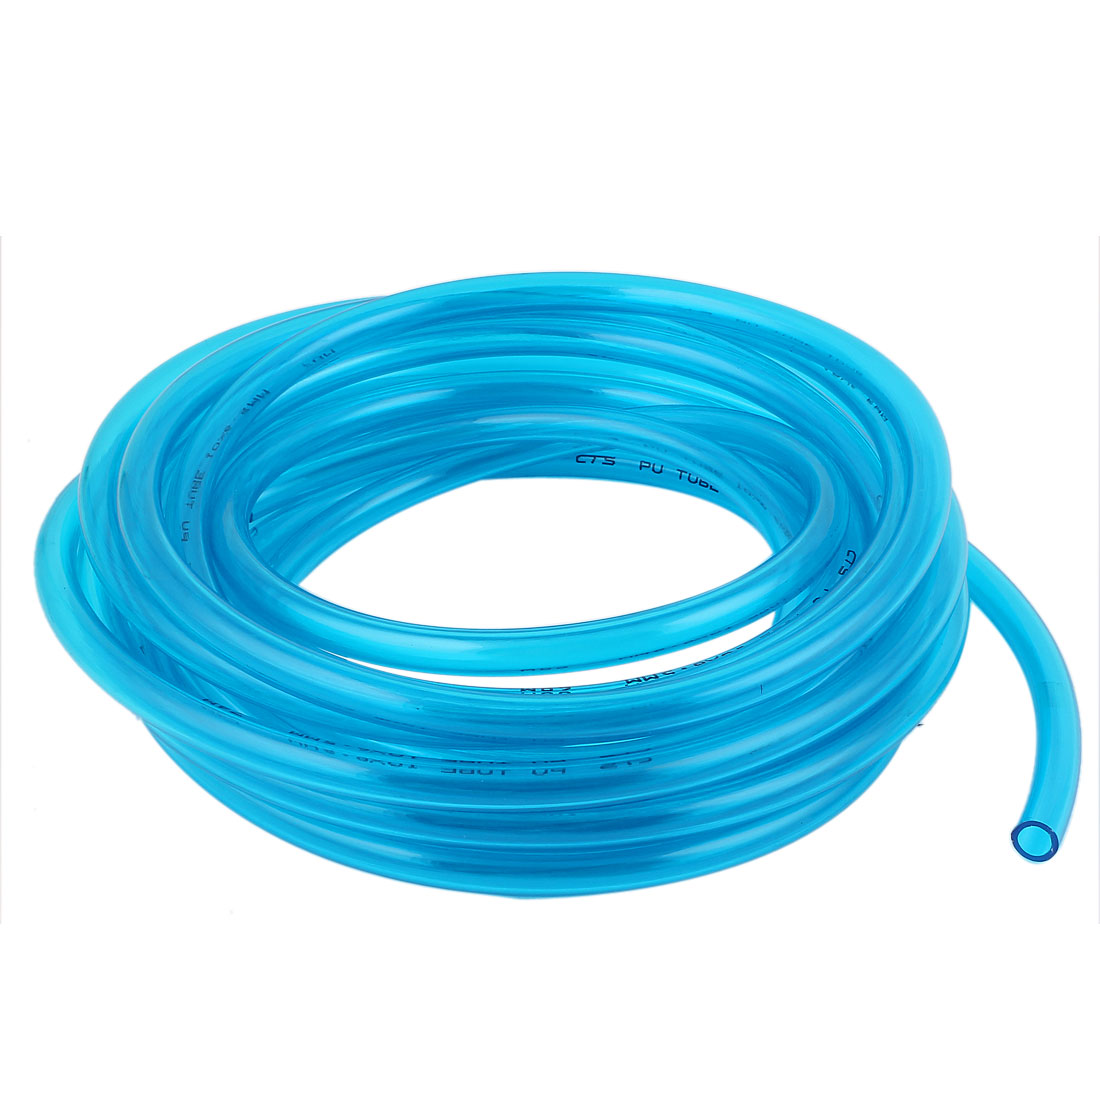 PU Polyurethane Tubing 12mm x 8mm Dia 8M 26Ft Air Tube for Connector Fitting